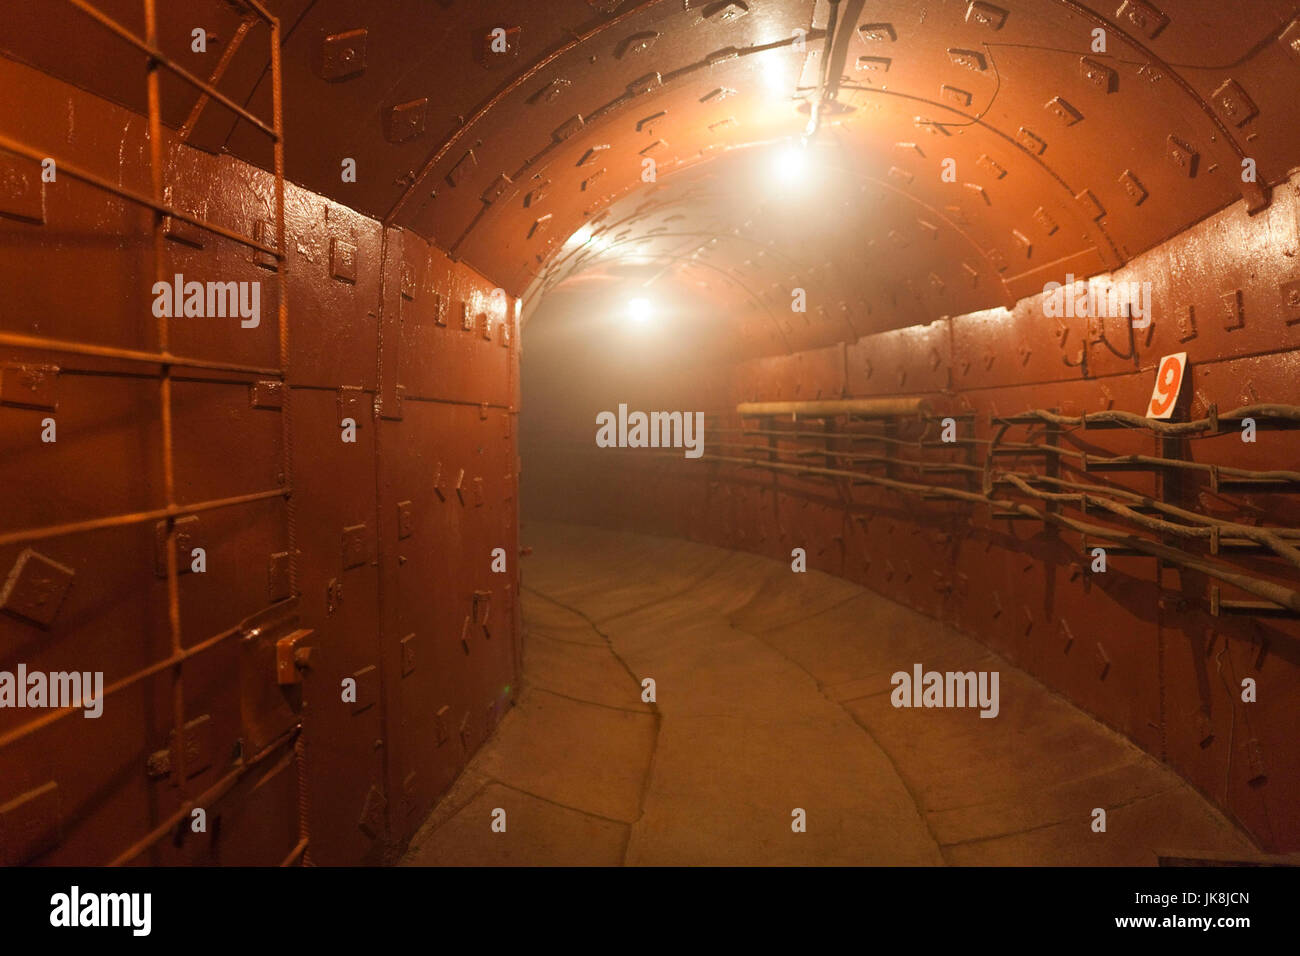 Russia, Moscow Oblast, Moscow, Taganka-area, ZKP Tagansky Cold War Museum, underground communication bunker, tunnel - Stock Image